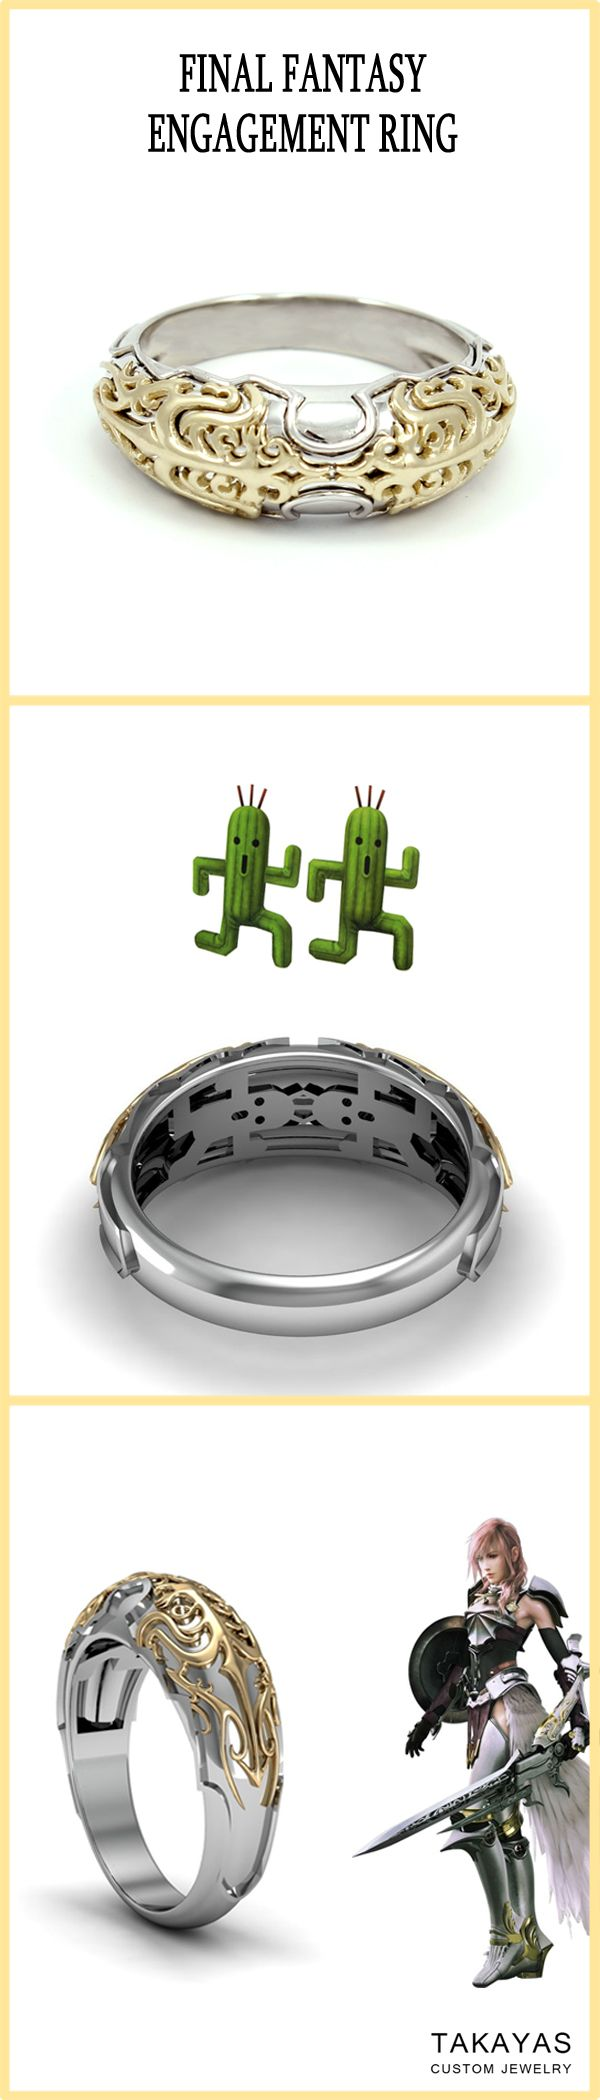 14k white and yellow gold Final Fantasy ring inspired by the armor Lightning wears in FFVII-2 and the Cactuar! Custom designed and handcrafted by Takayas Custom Jewelry